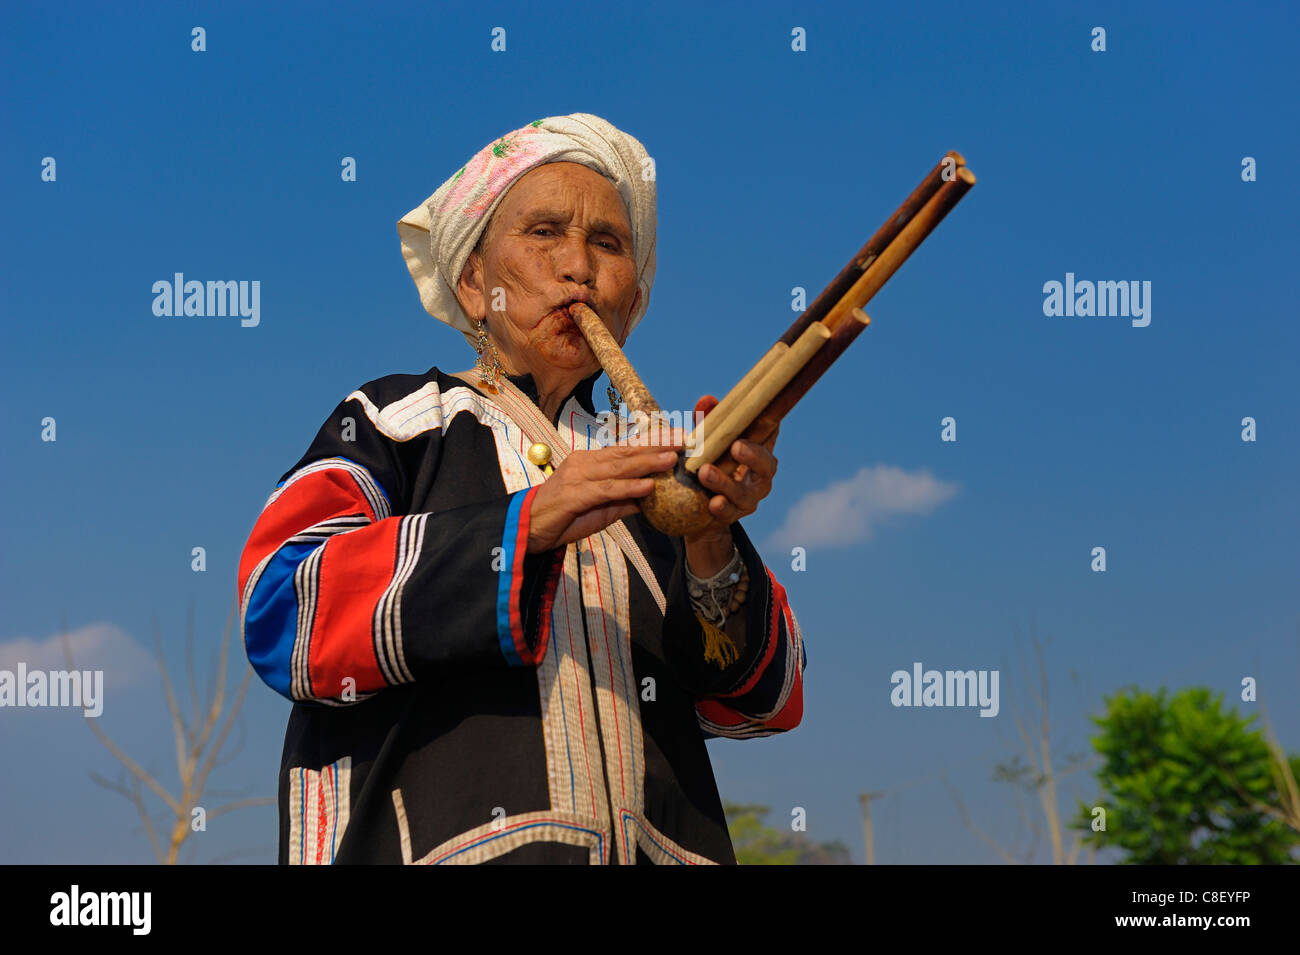 Hilltribe woman, Lahu tribe, near Pai, Thailand, Asia, music, instrument - Stock Image